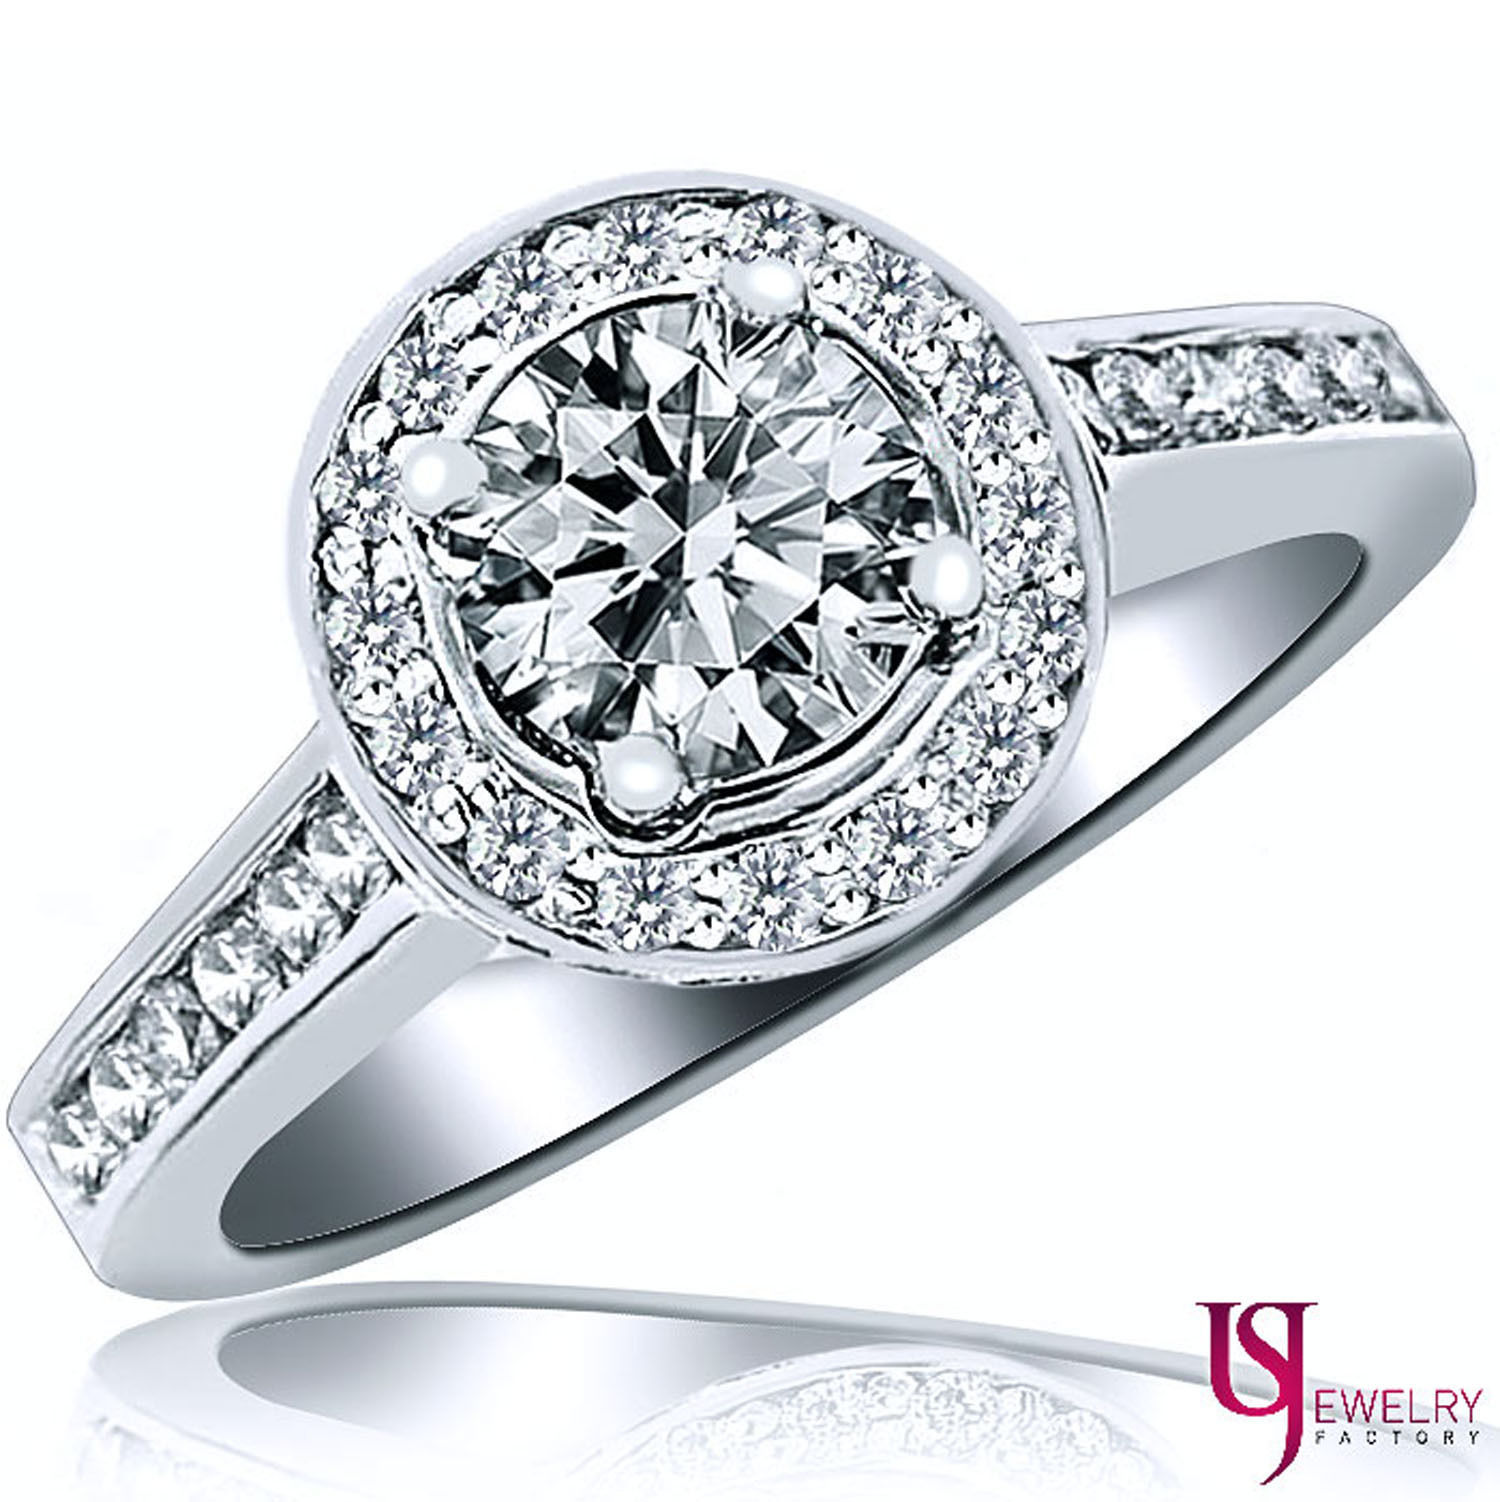 Primary image for 1.64ct Round Cut Halo Set Surprise Diamond Engagement Ring 14k White Gold Shank